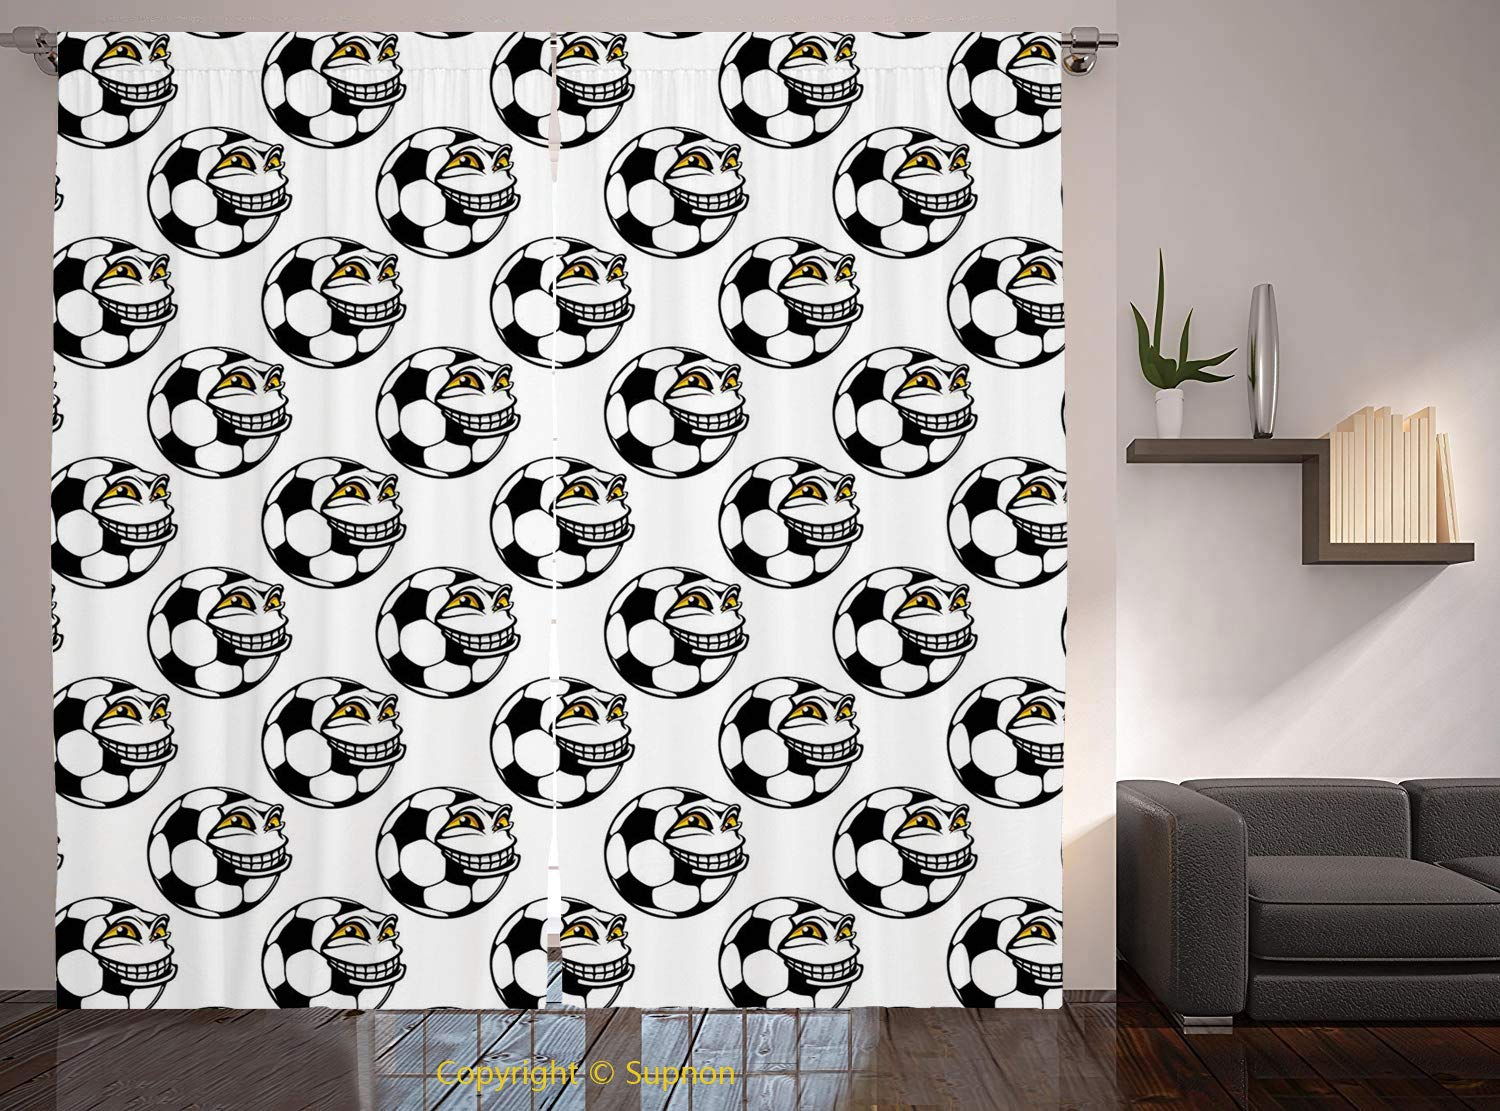 Living Room Bedroom Window Drapes/Rod Pocket Curtain Panel Satin Curtains/2 Curtain Panels/120 x 66 Inch/Soccer,Cartoon Football Mascot with Happy Funny Face Expression Sports Game Play Decorative,Bla